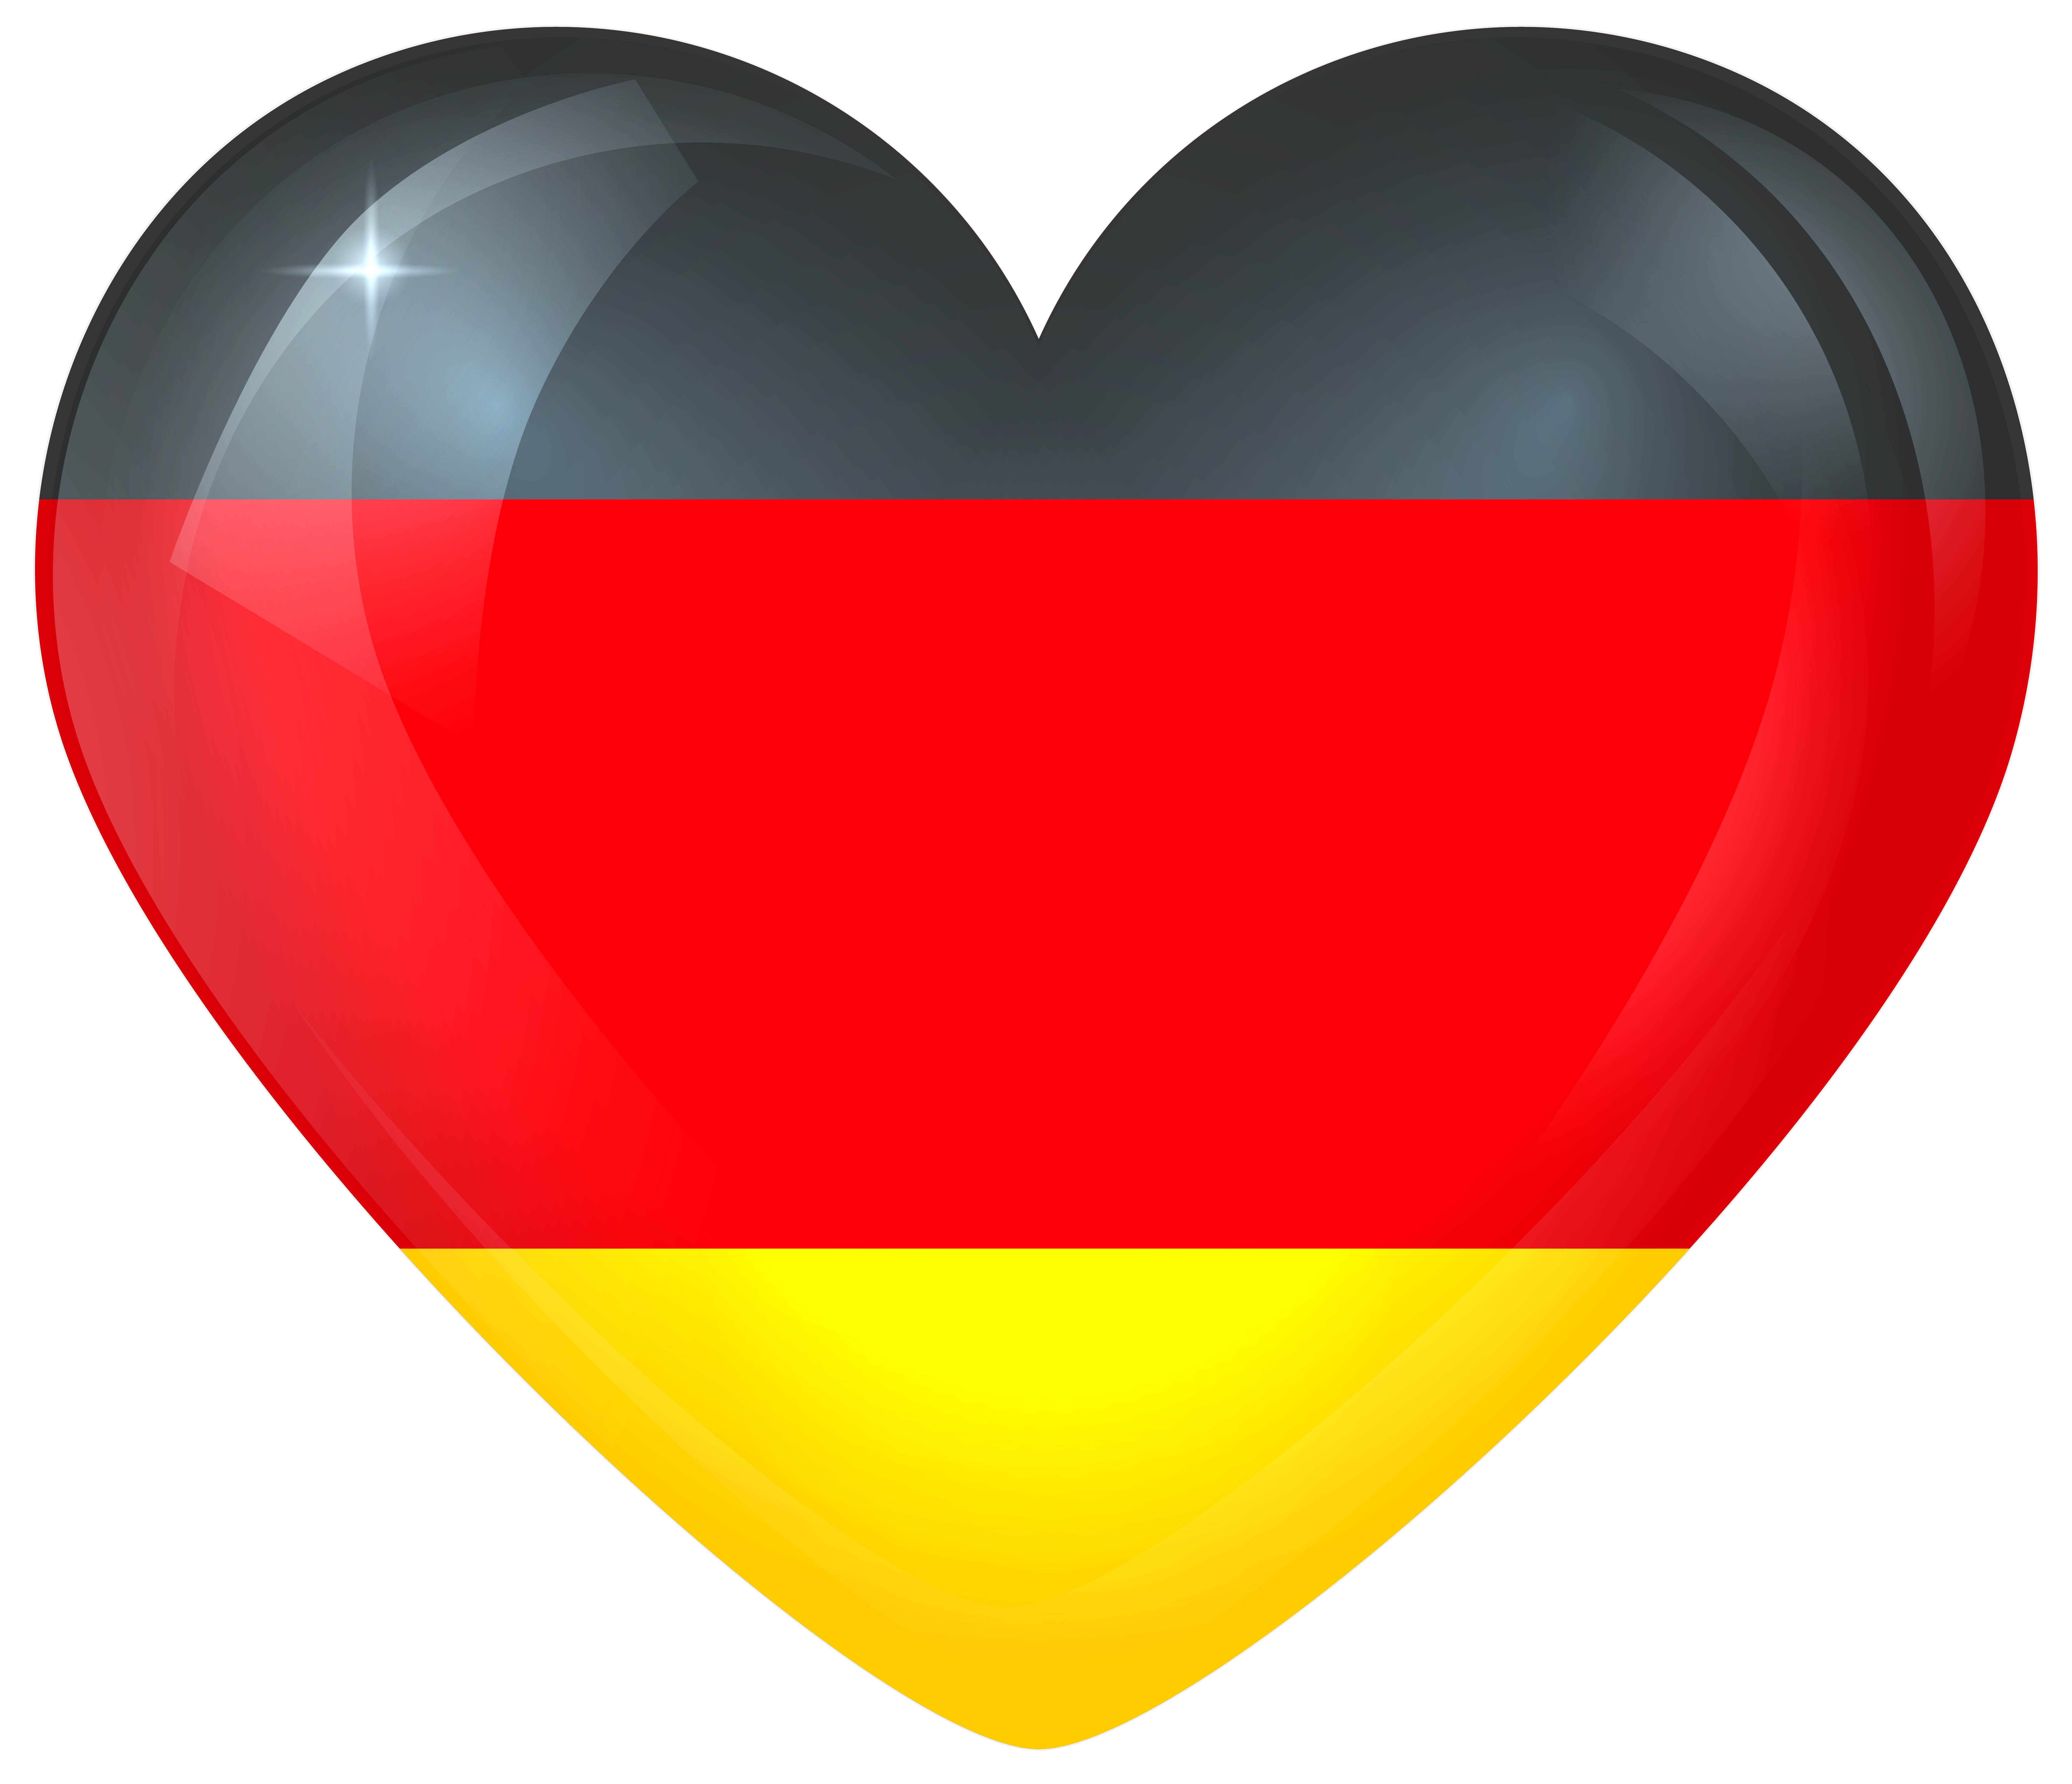 German clipart thing german. Germany large heart flag